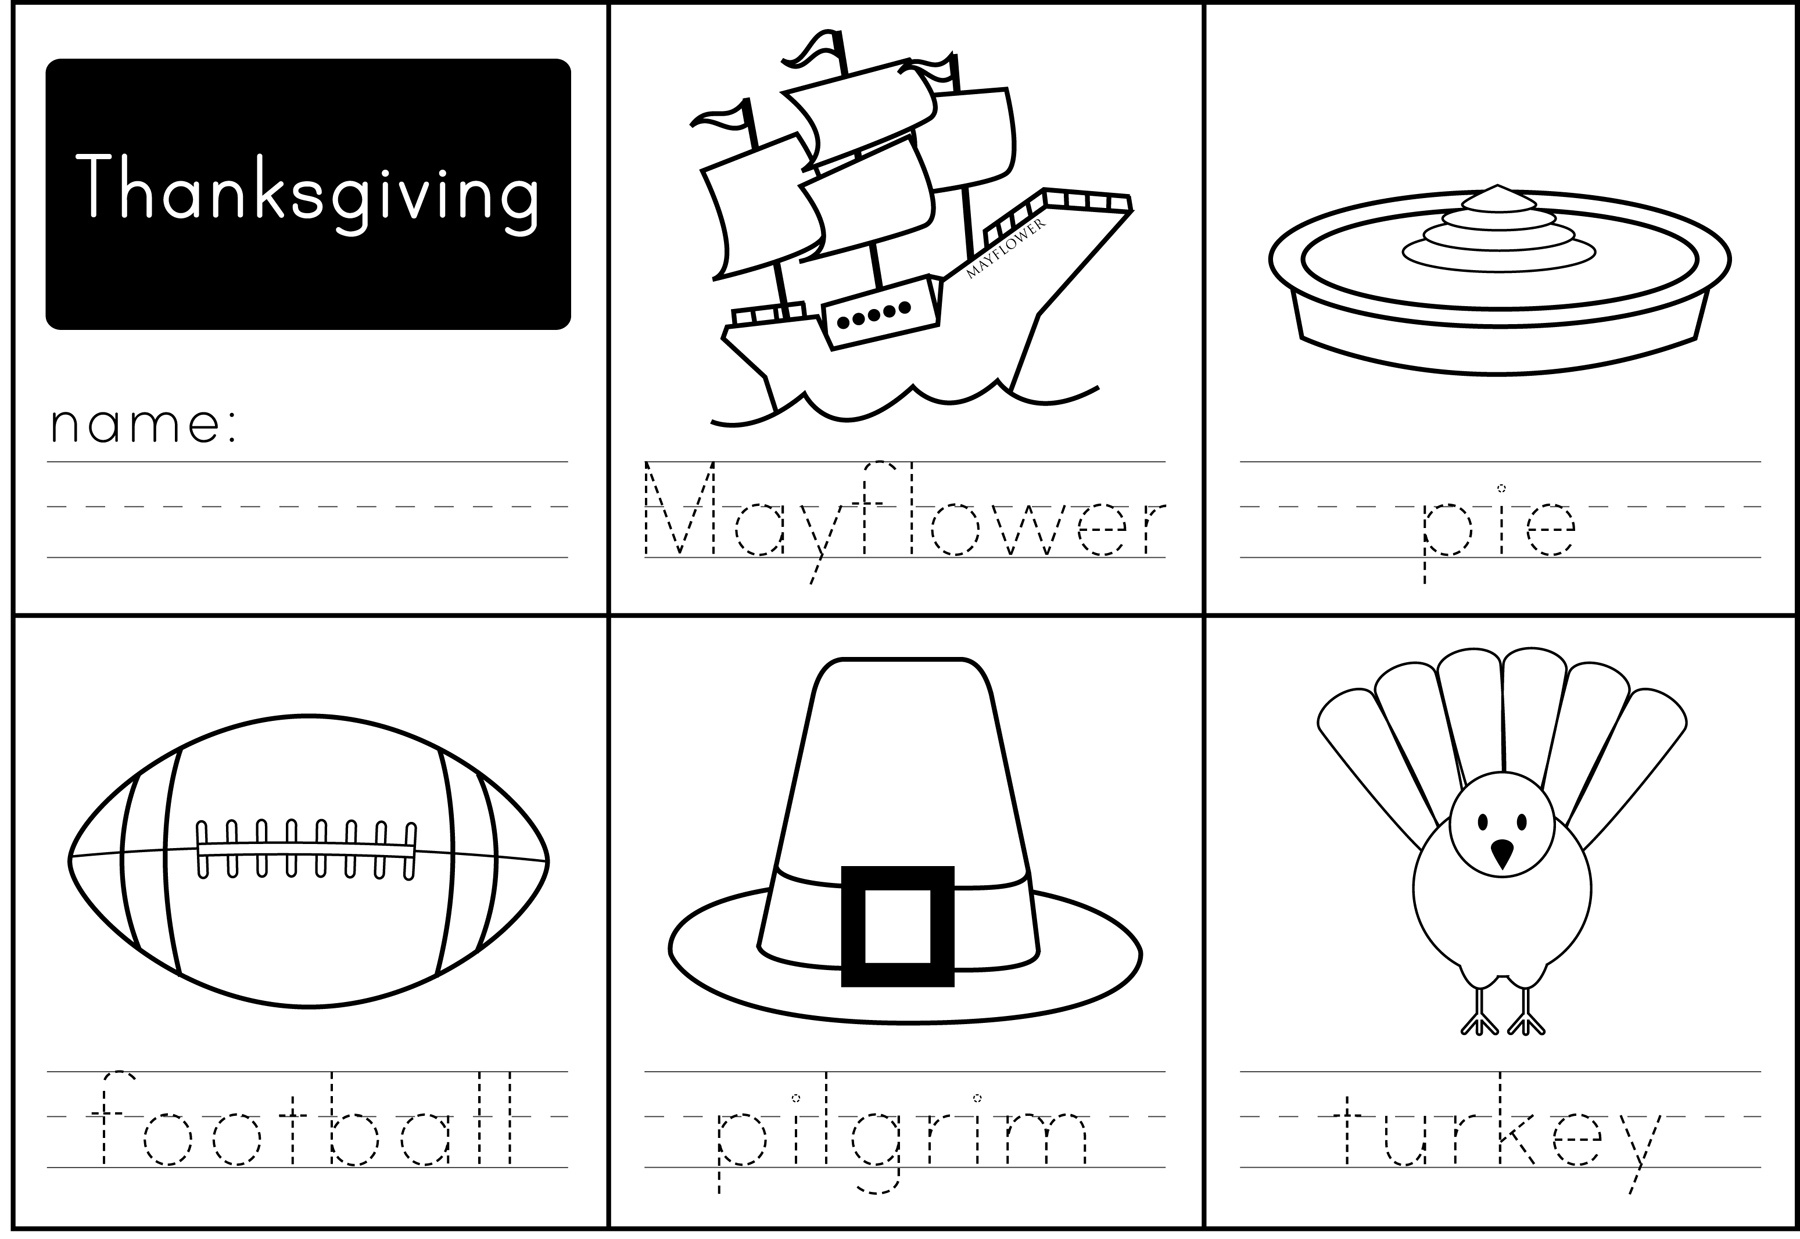 Thanksgiving Activities - Paging Supermom - Free Printable Thanksgiving Activities